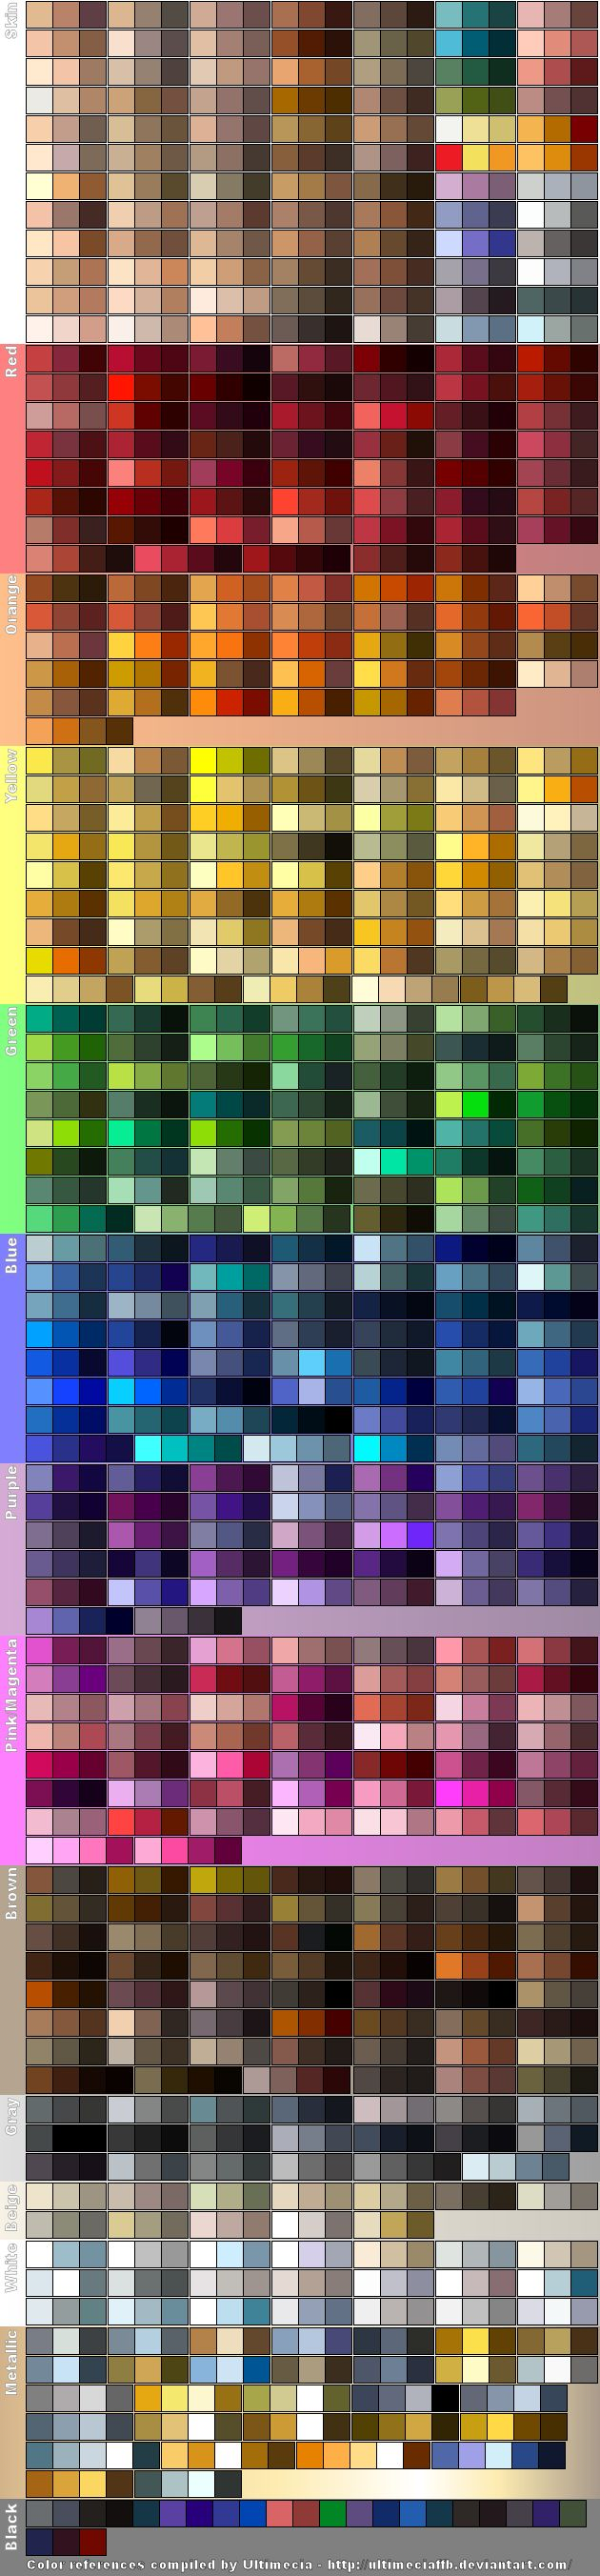 Color References 5 by ~UltimeciaFFB on deviantART